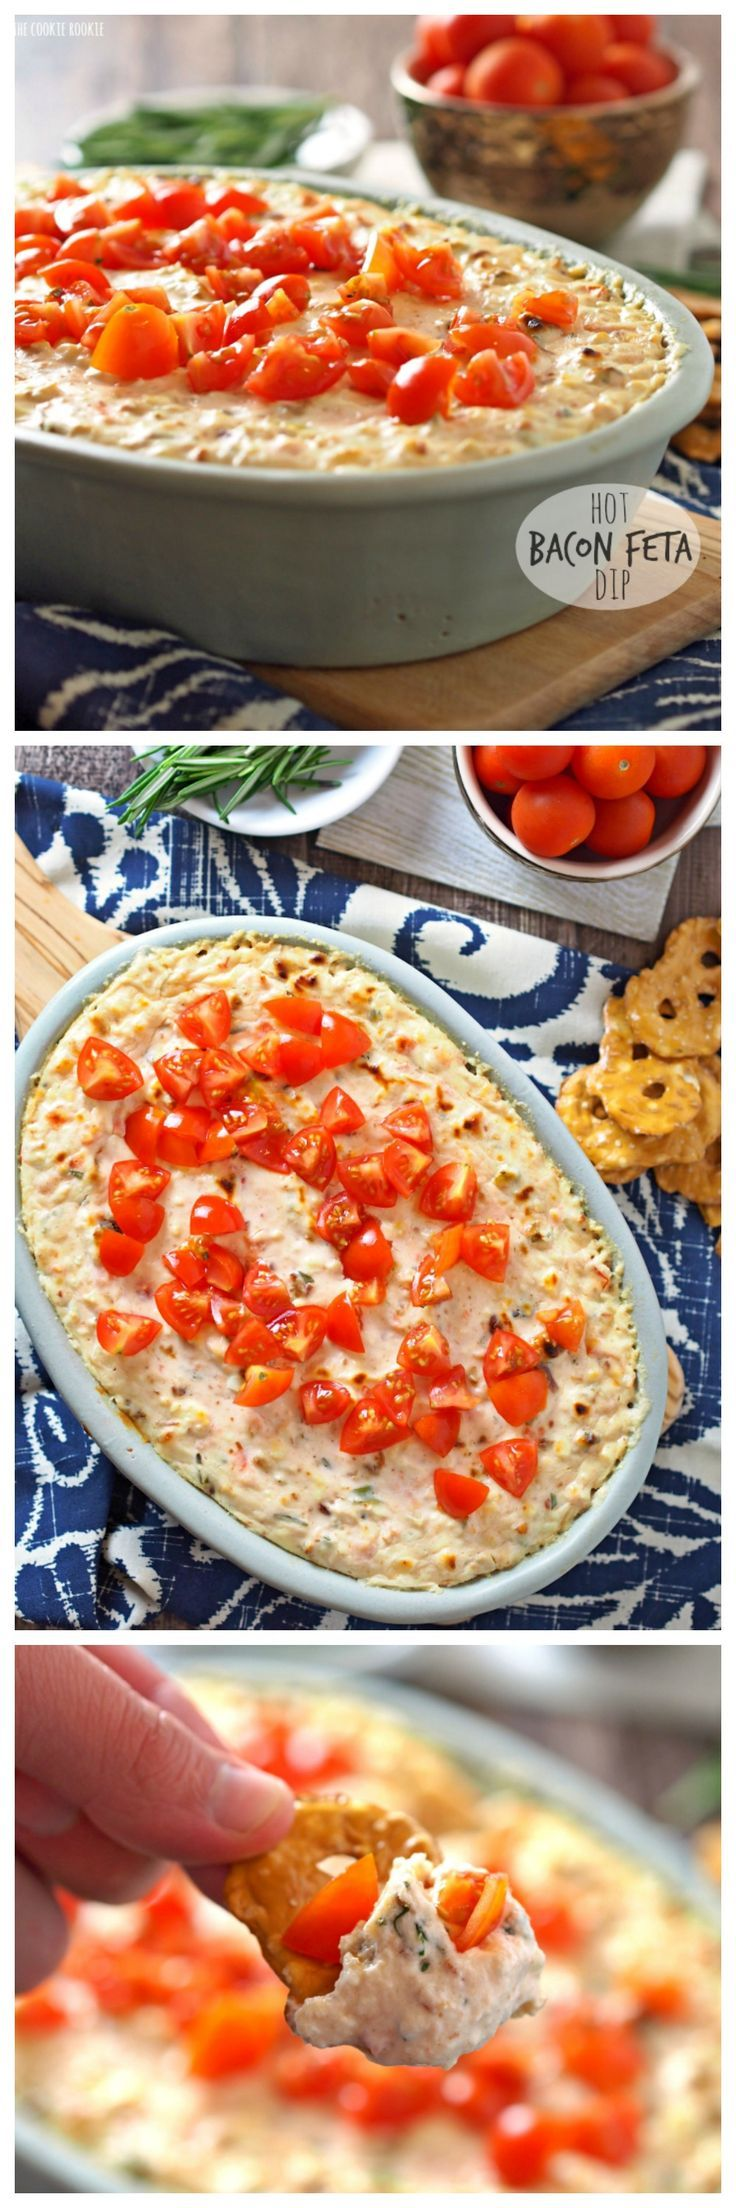 Hot Bacon Feta Dip   A great game day or holiday party appetizer!